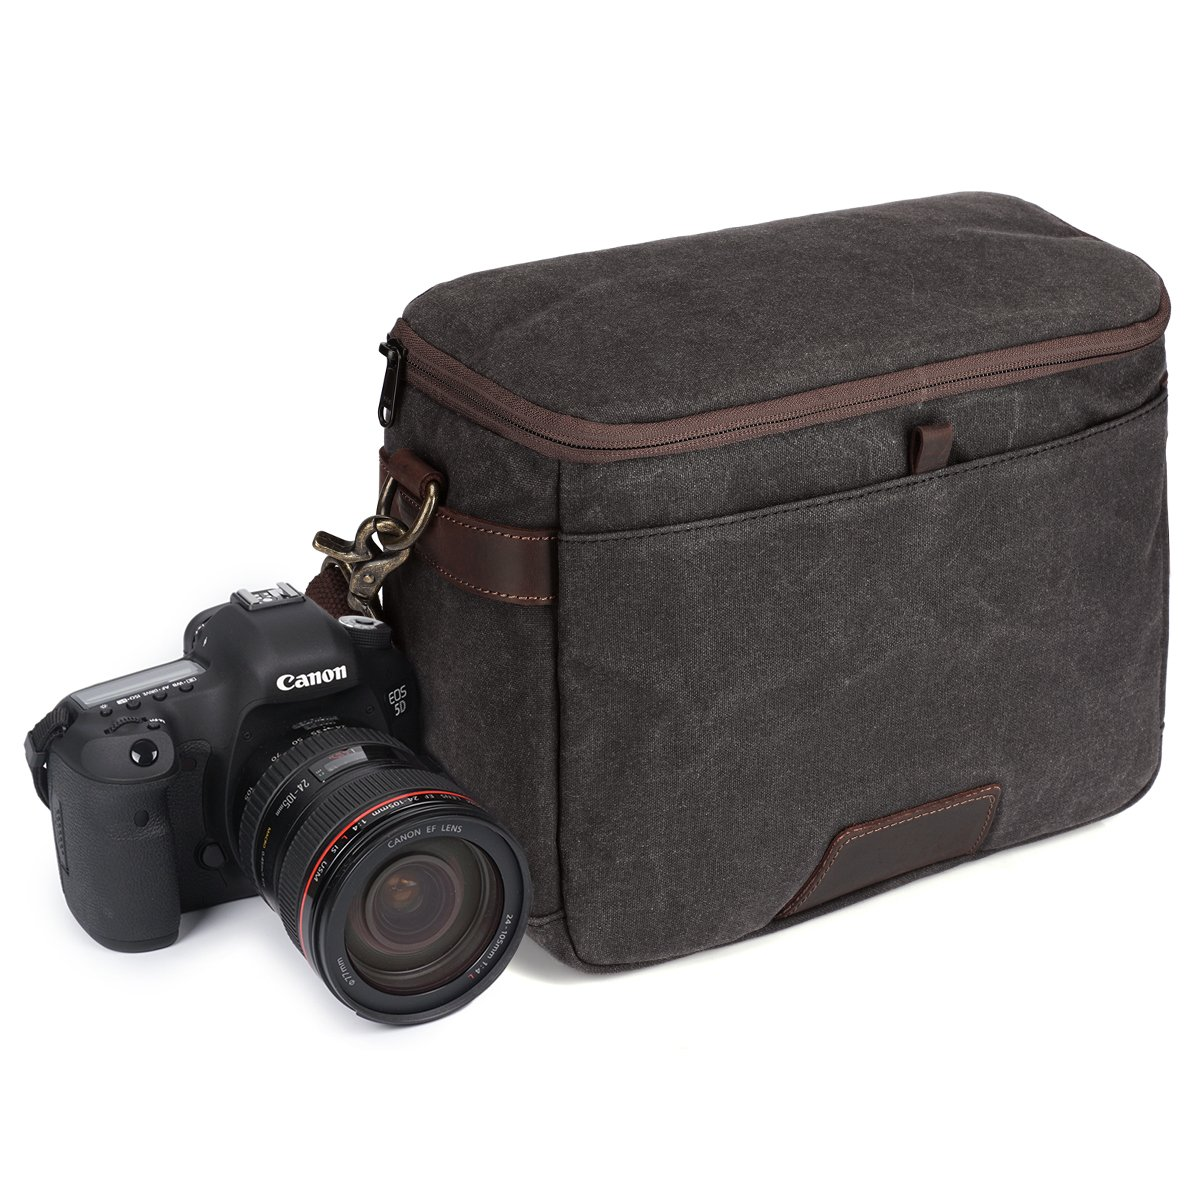 S-ZONE Waxed Canvas Leather Trim Camera Bag Messenger Shoulder Bag for Nikon, Canon, Sony DSLR and Lenses